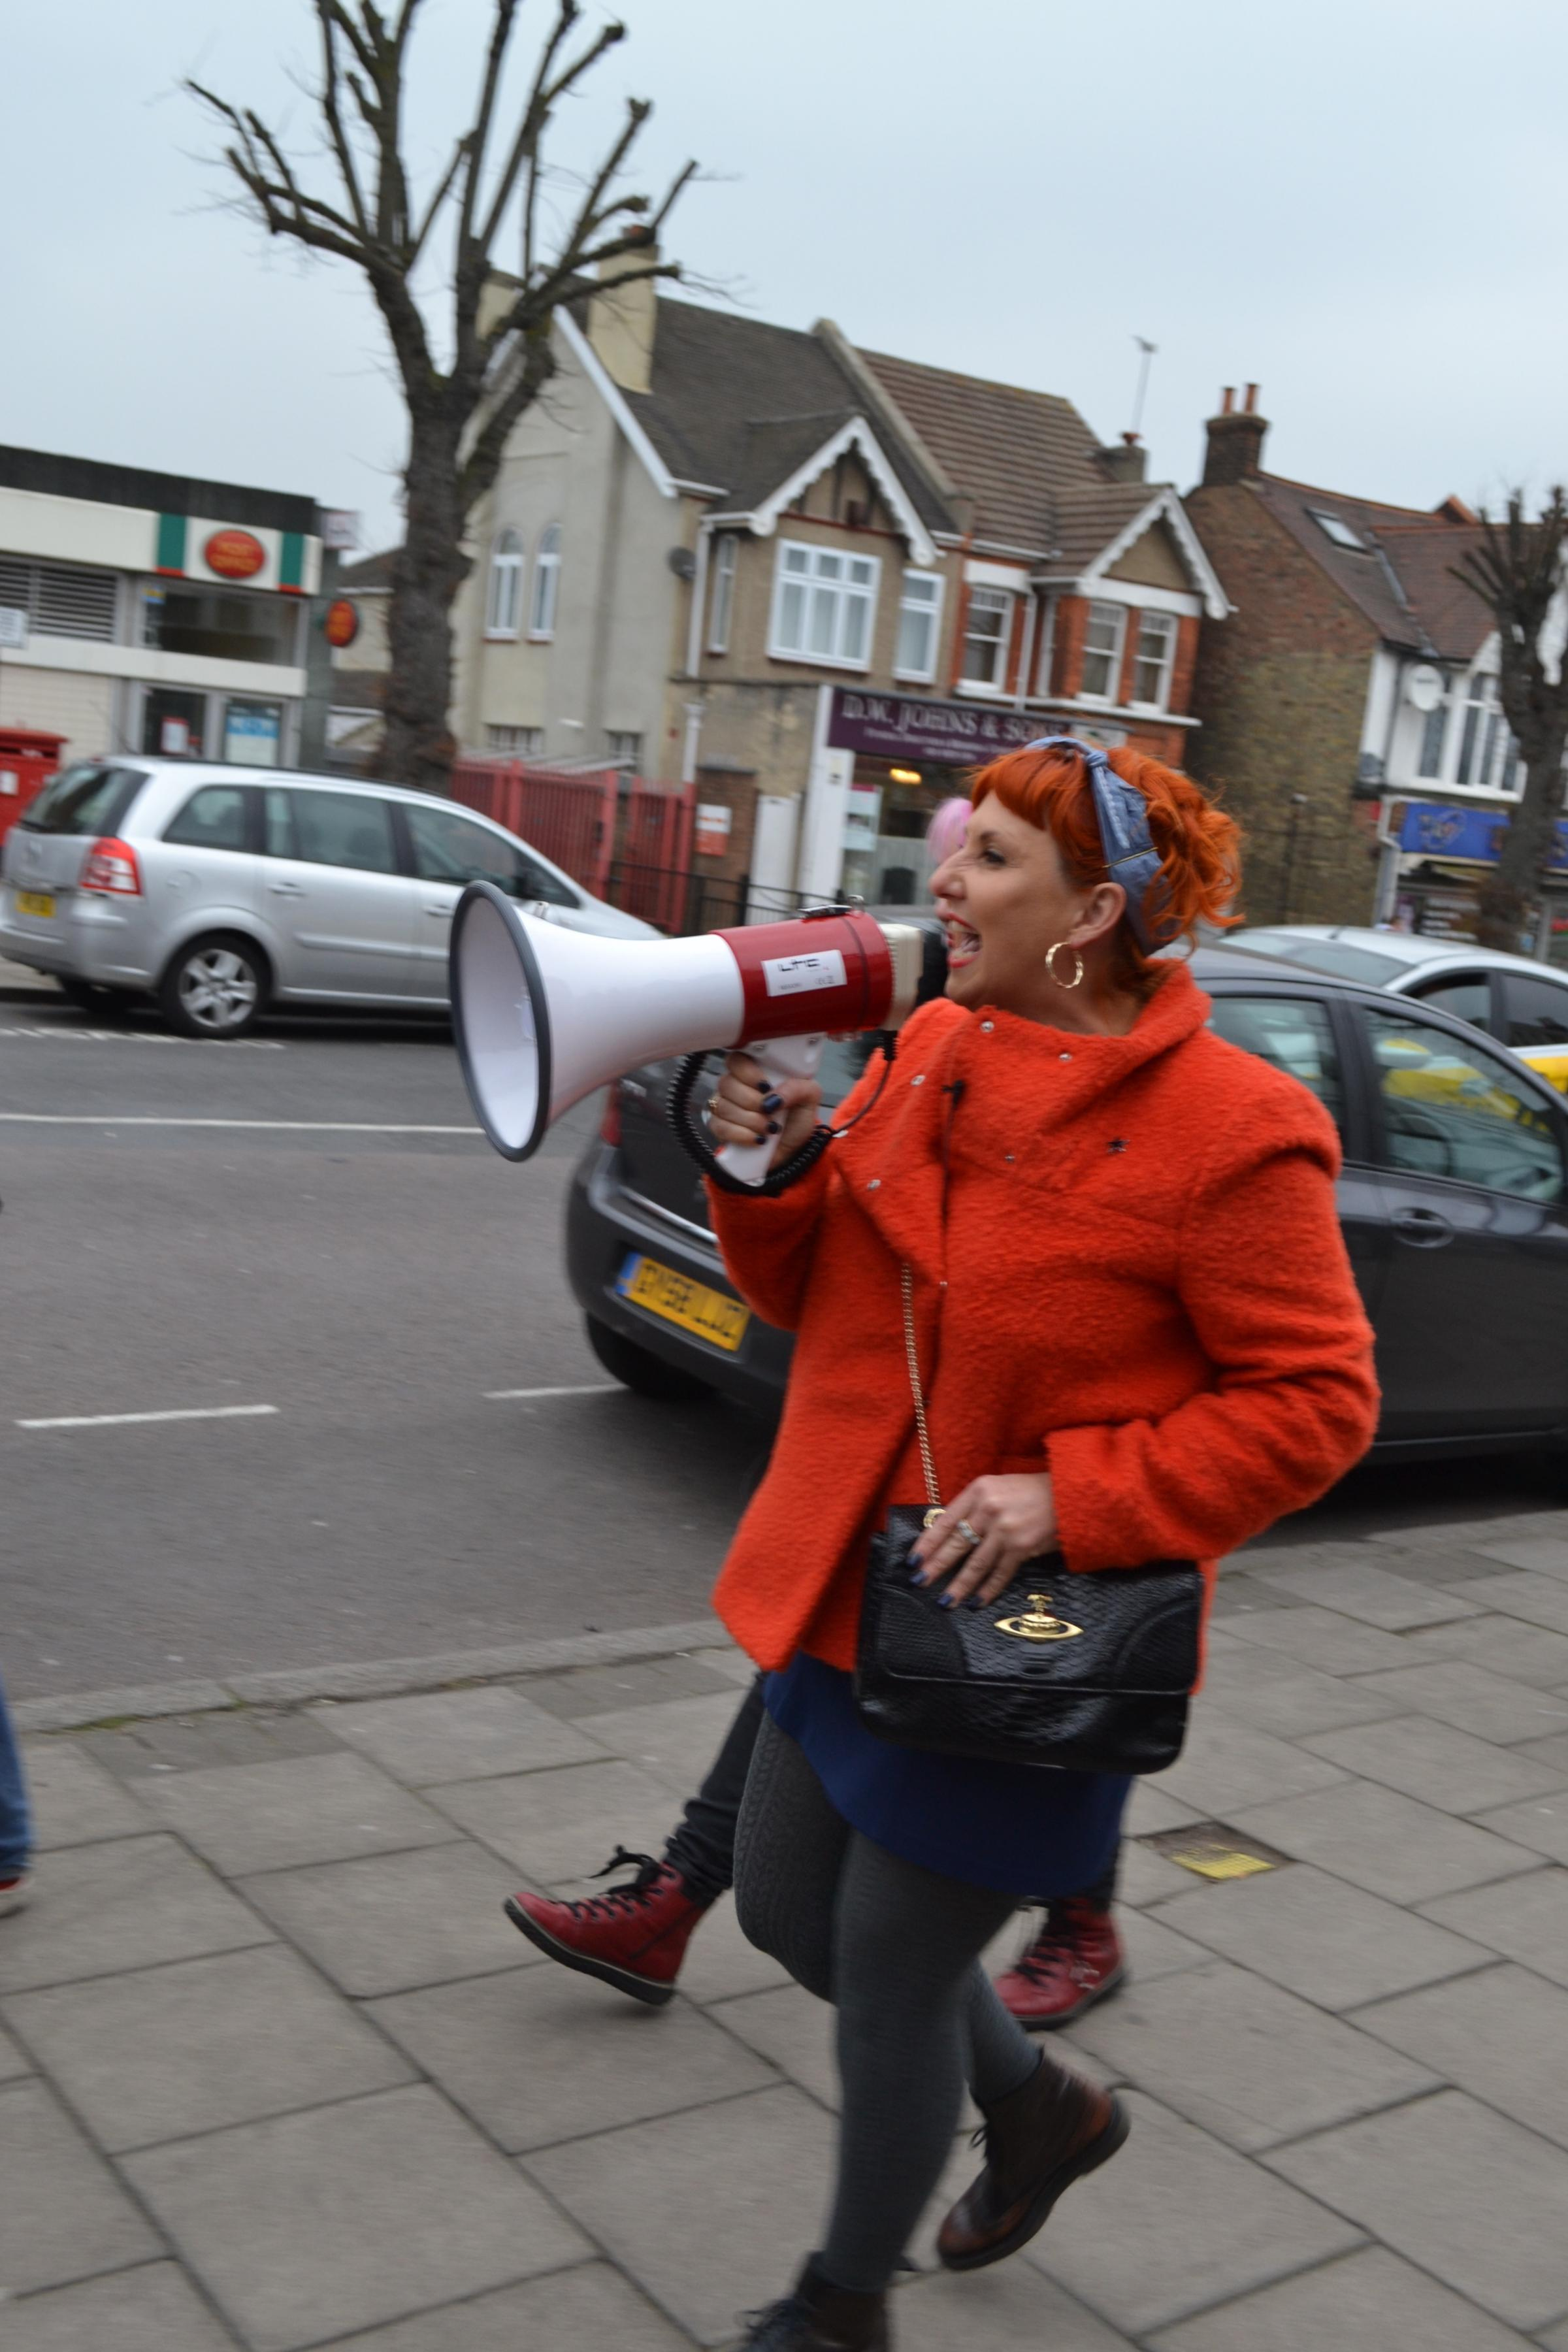 The LSE fellow marching through Station Road in Chingford last month